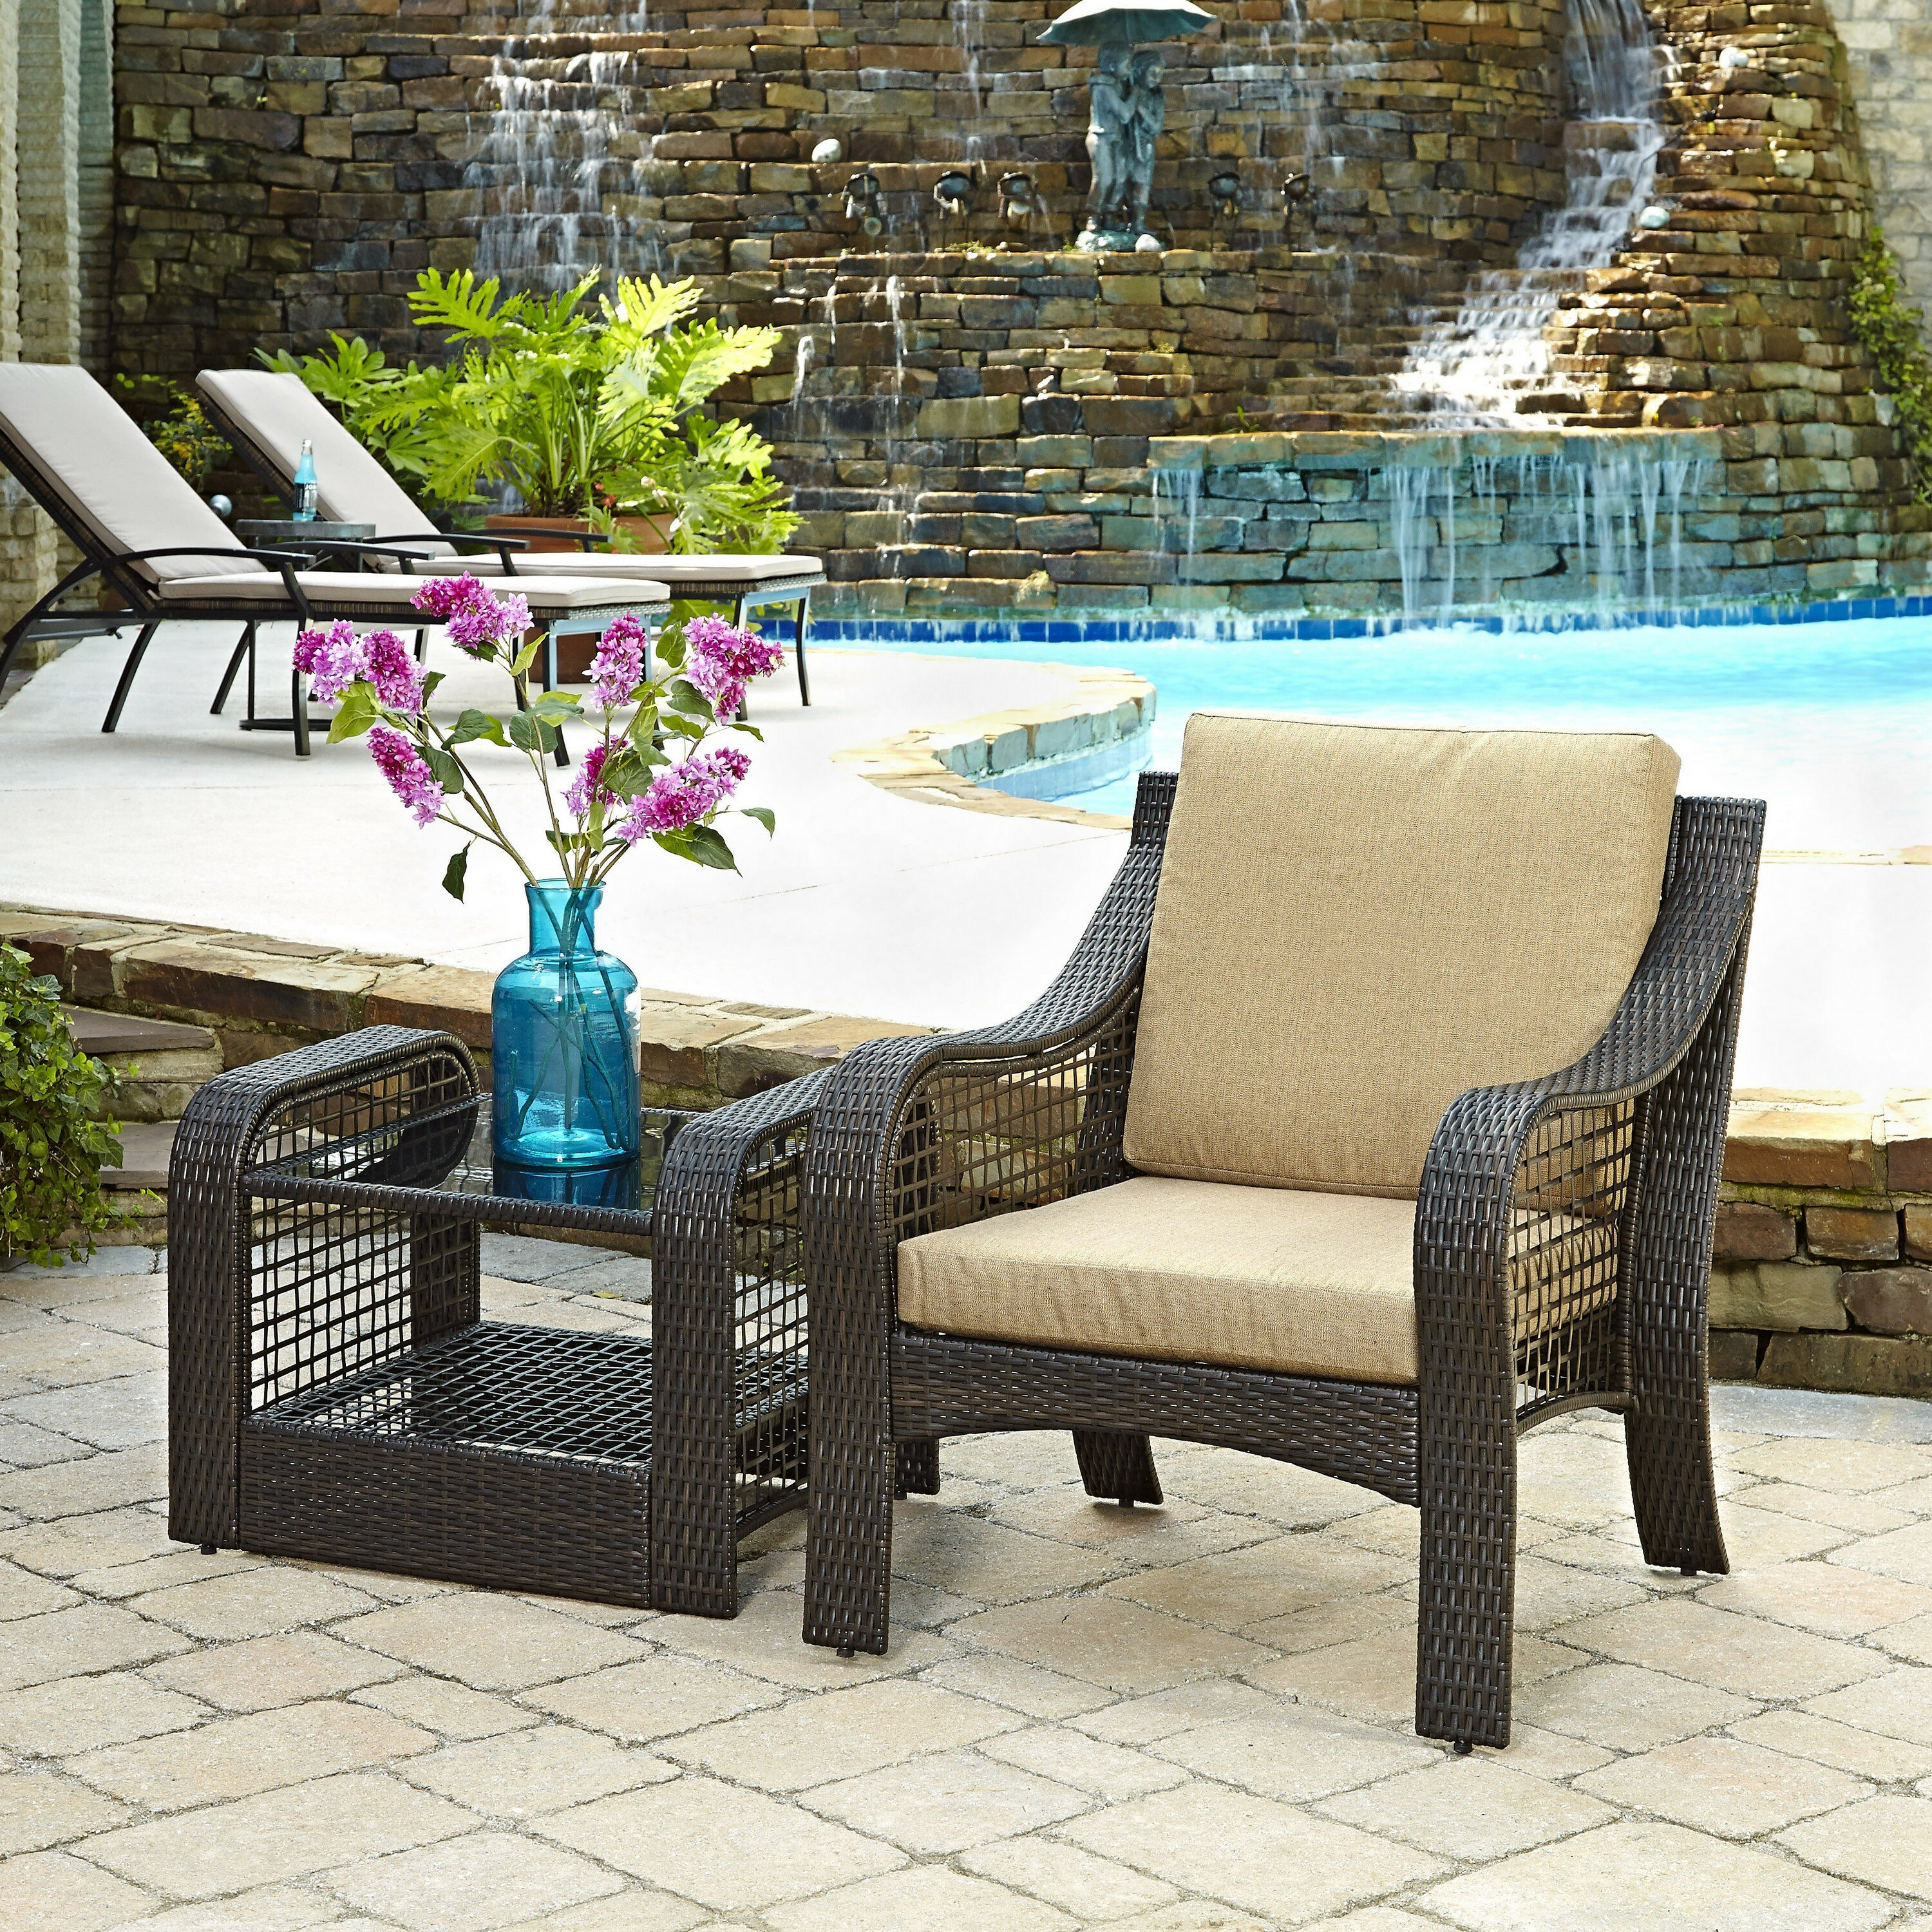 Ocean Breeze Patio Furniture Lanai Breeze Side Table